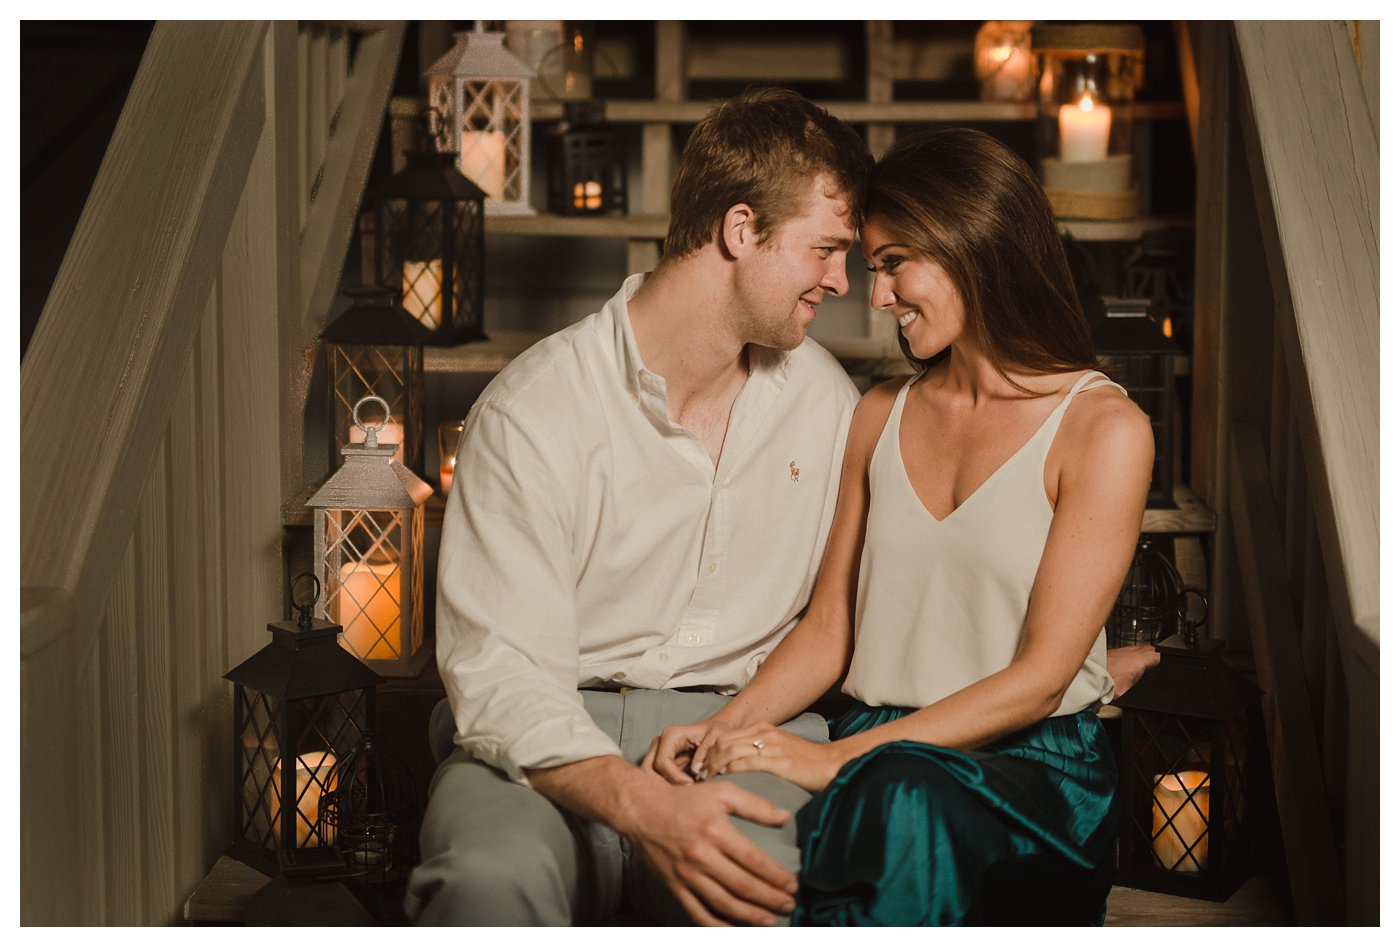 Ocean_Isle_NC_Coastal_Beach_Engagement_Session_Turqoise_White_Candlelit_0014.jpg